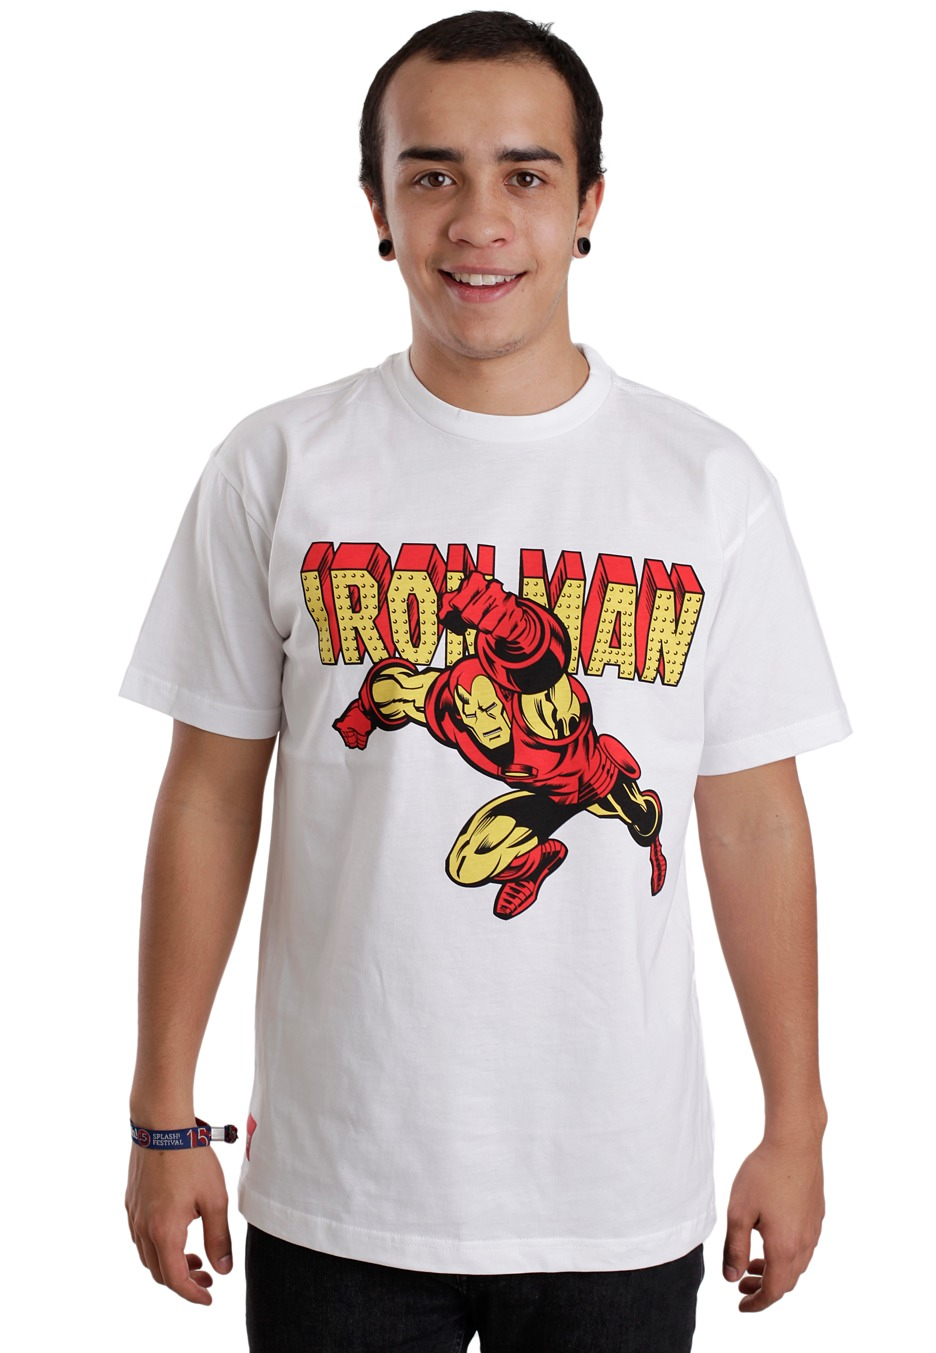 Addict iron man vintage logo white t shirt impericon for Old logo t shirts